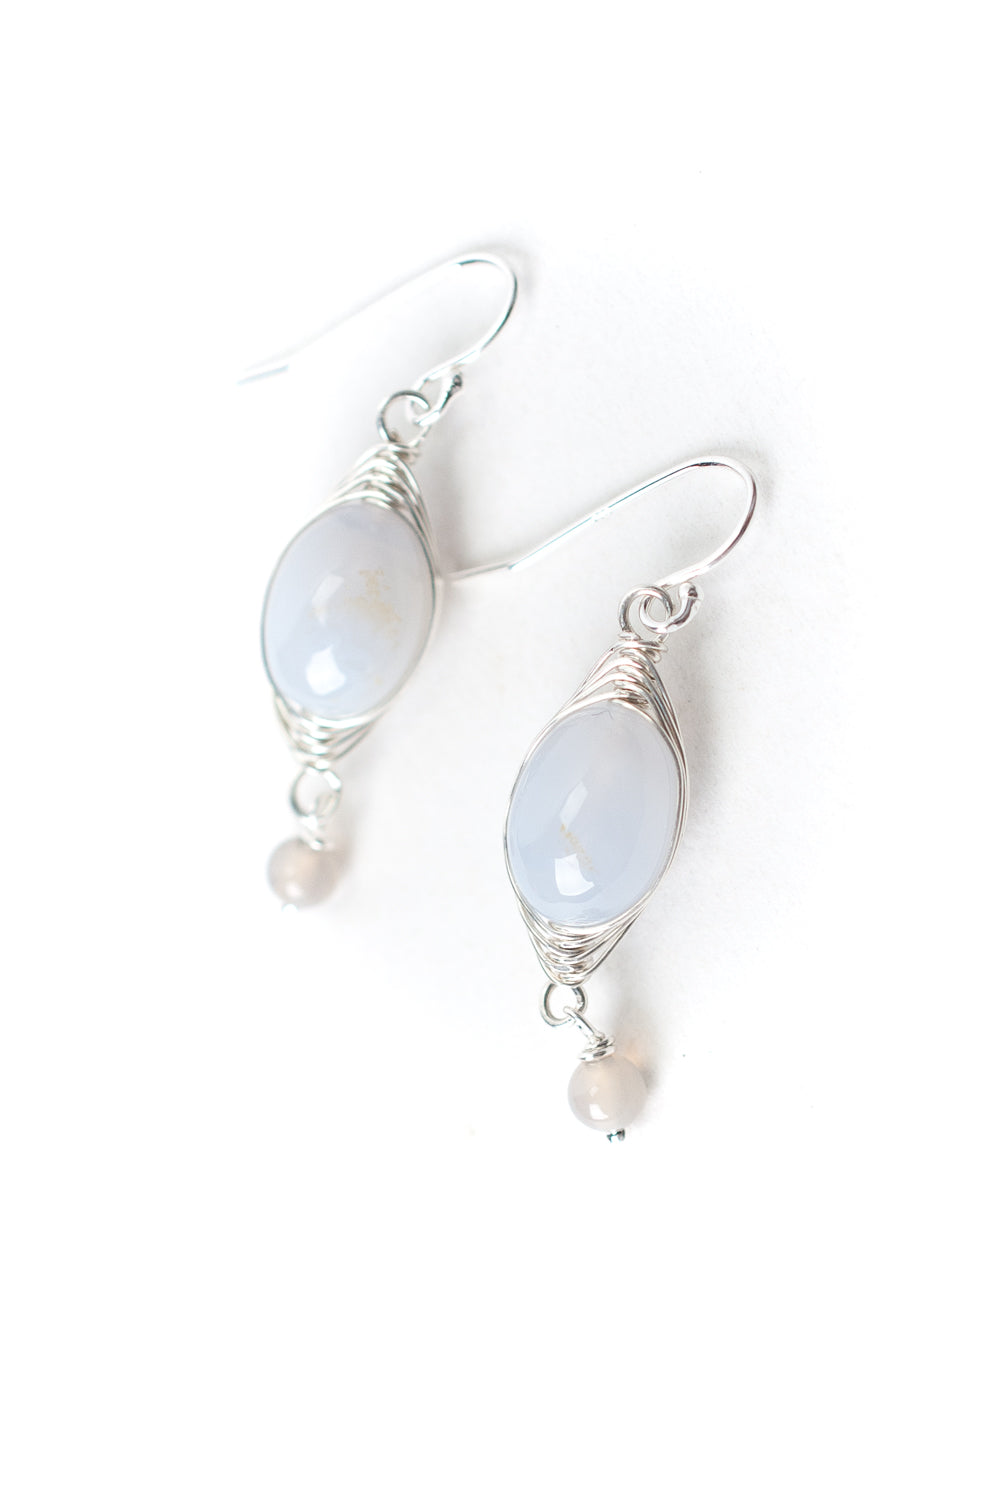 Silver Sky Blue Lace Agate Herringbone Earrings